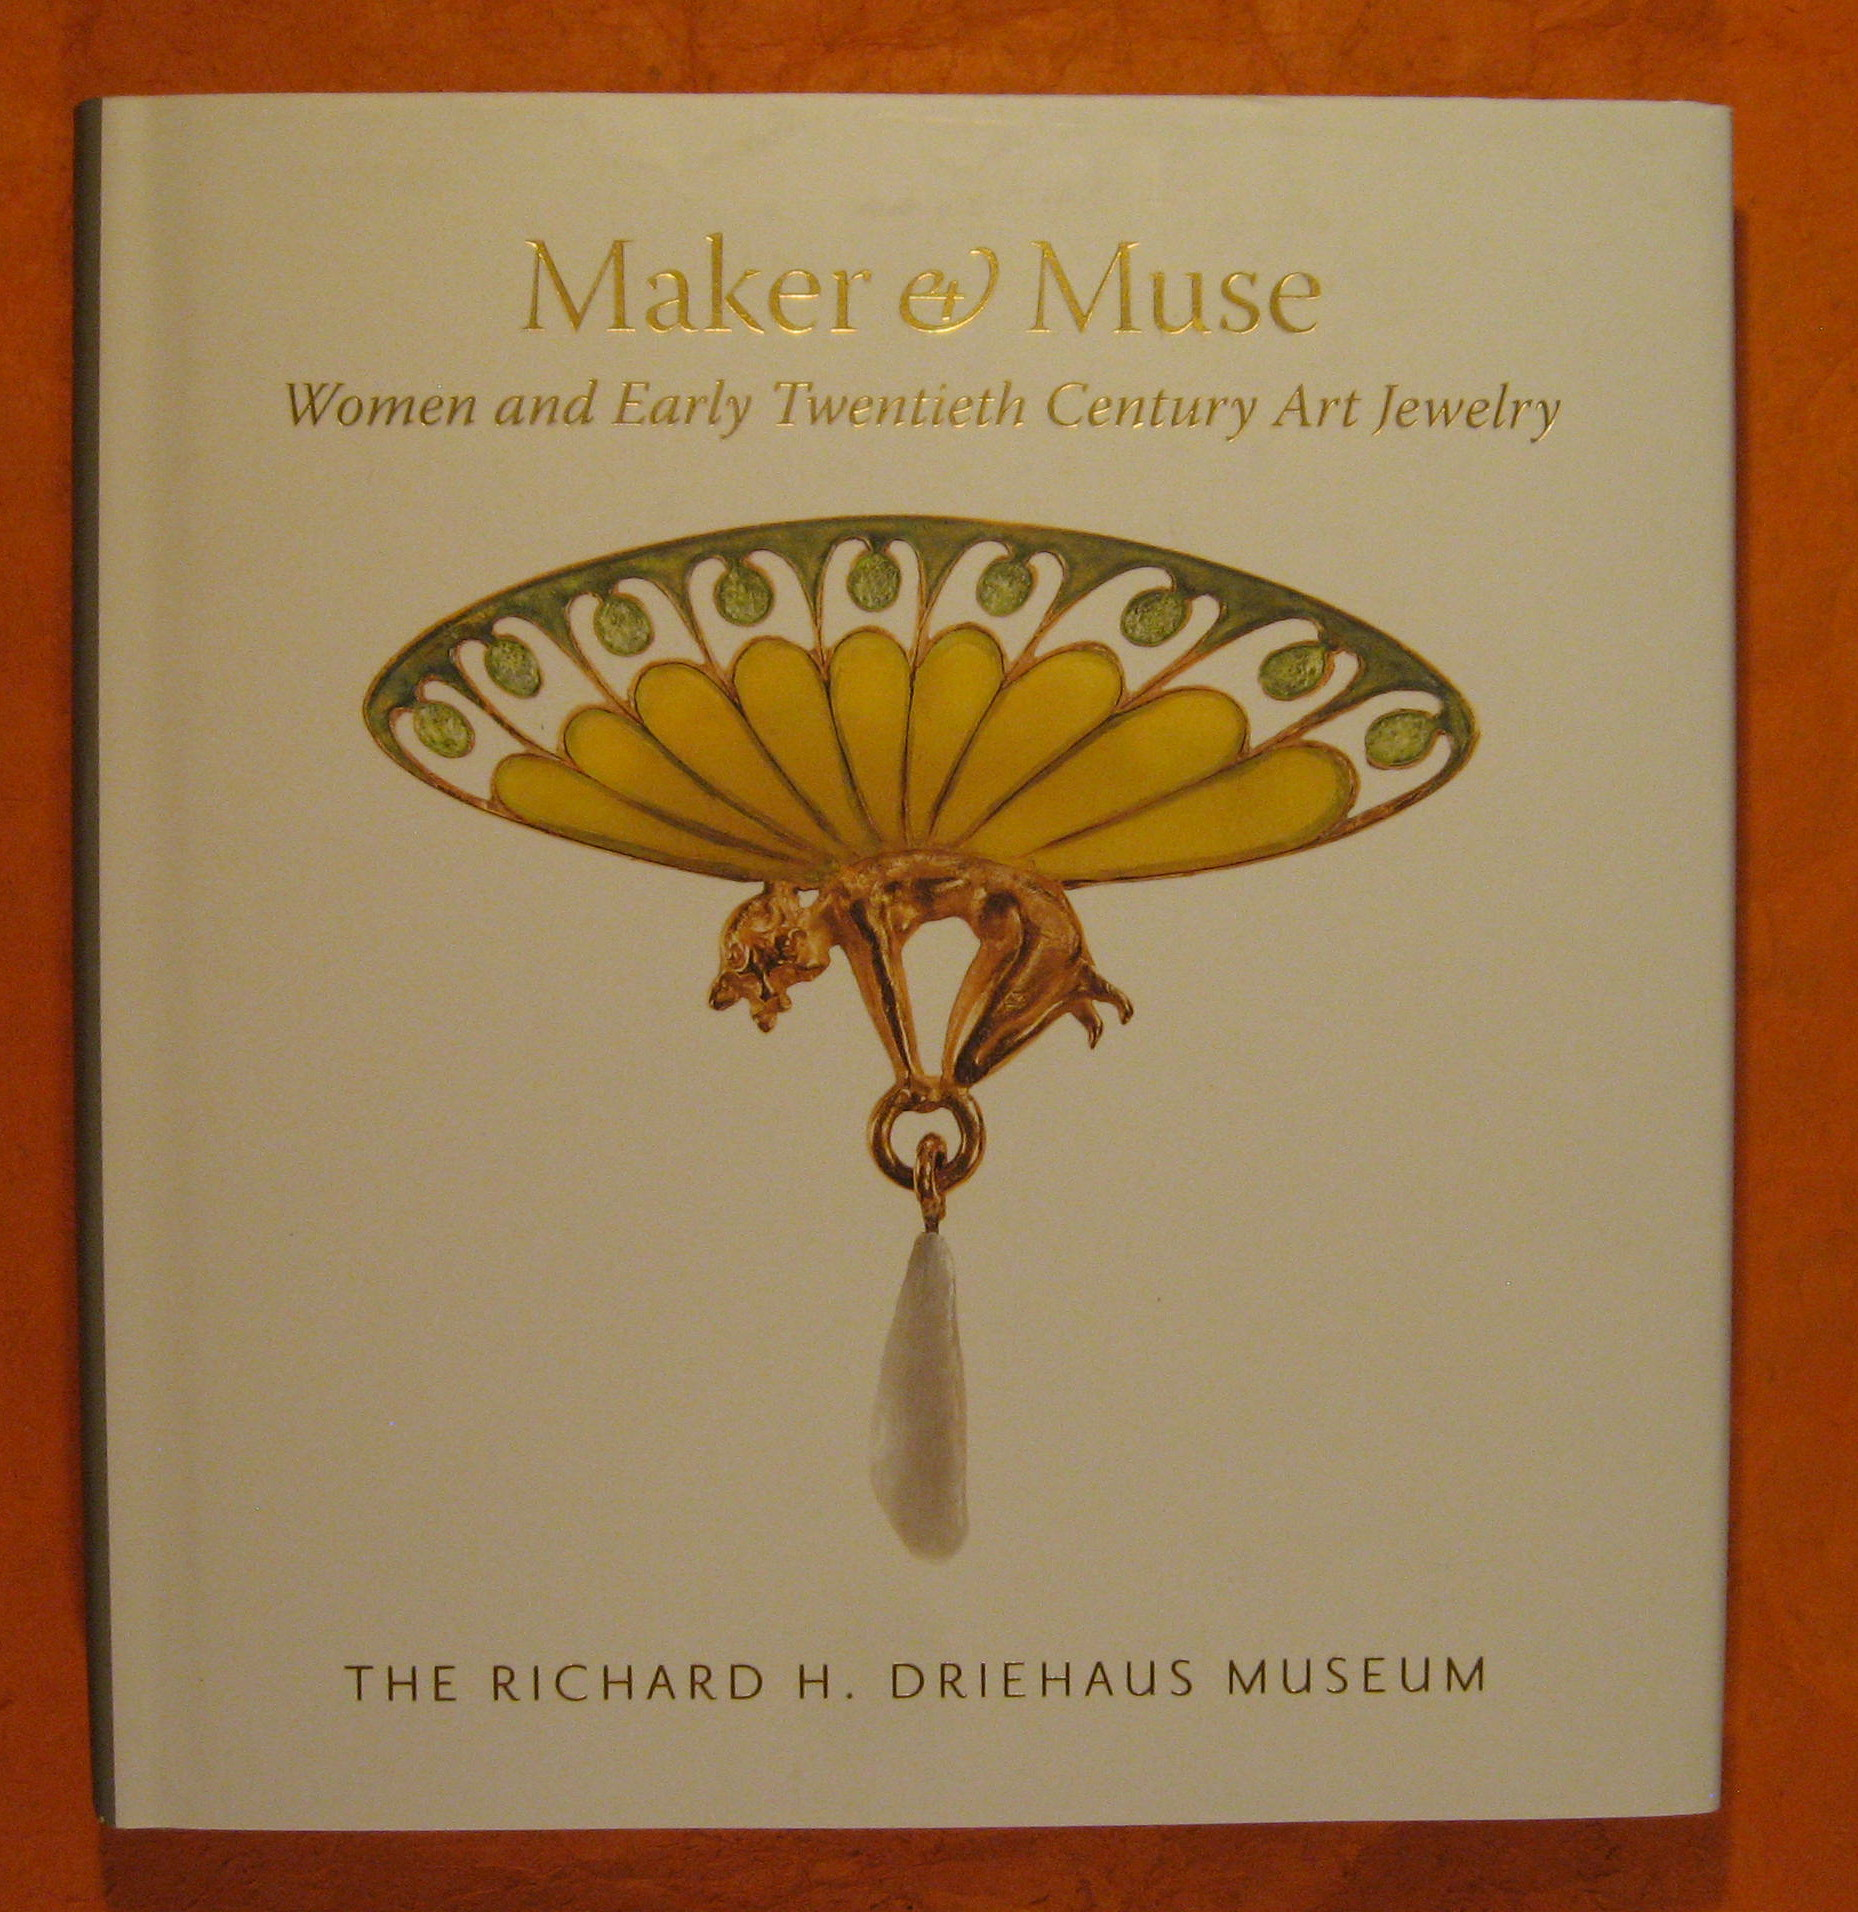 Image for Maker and Muse: Women and Early Twentieth Century Art Jewelry